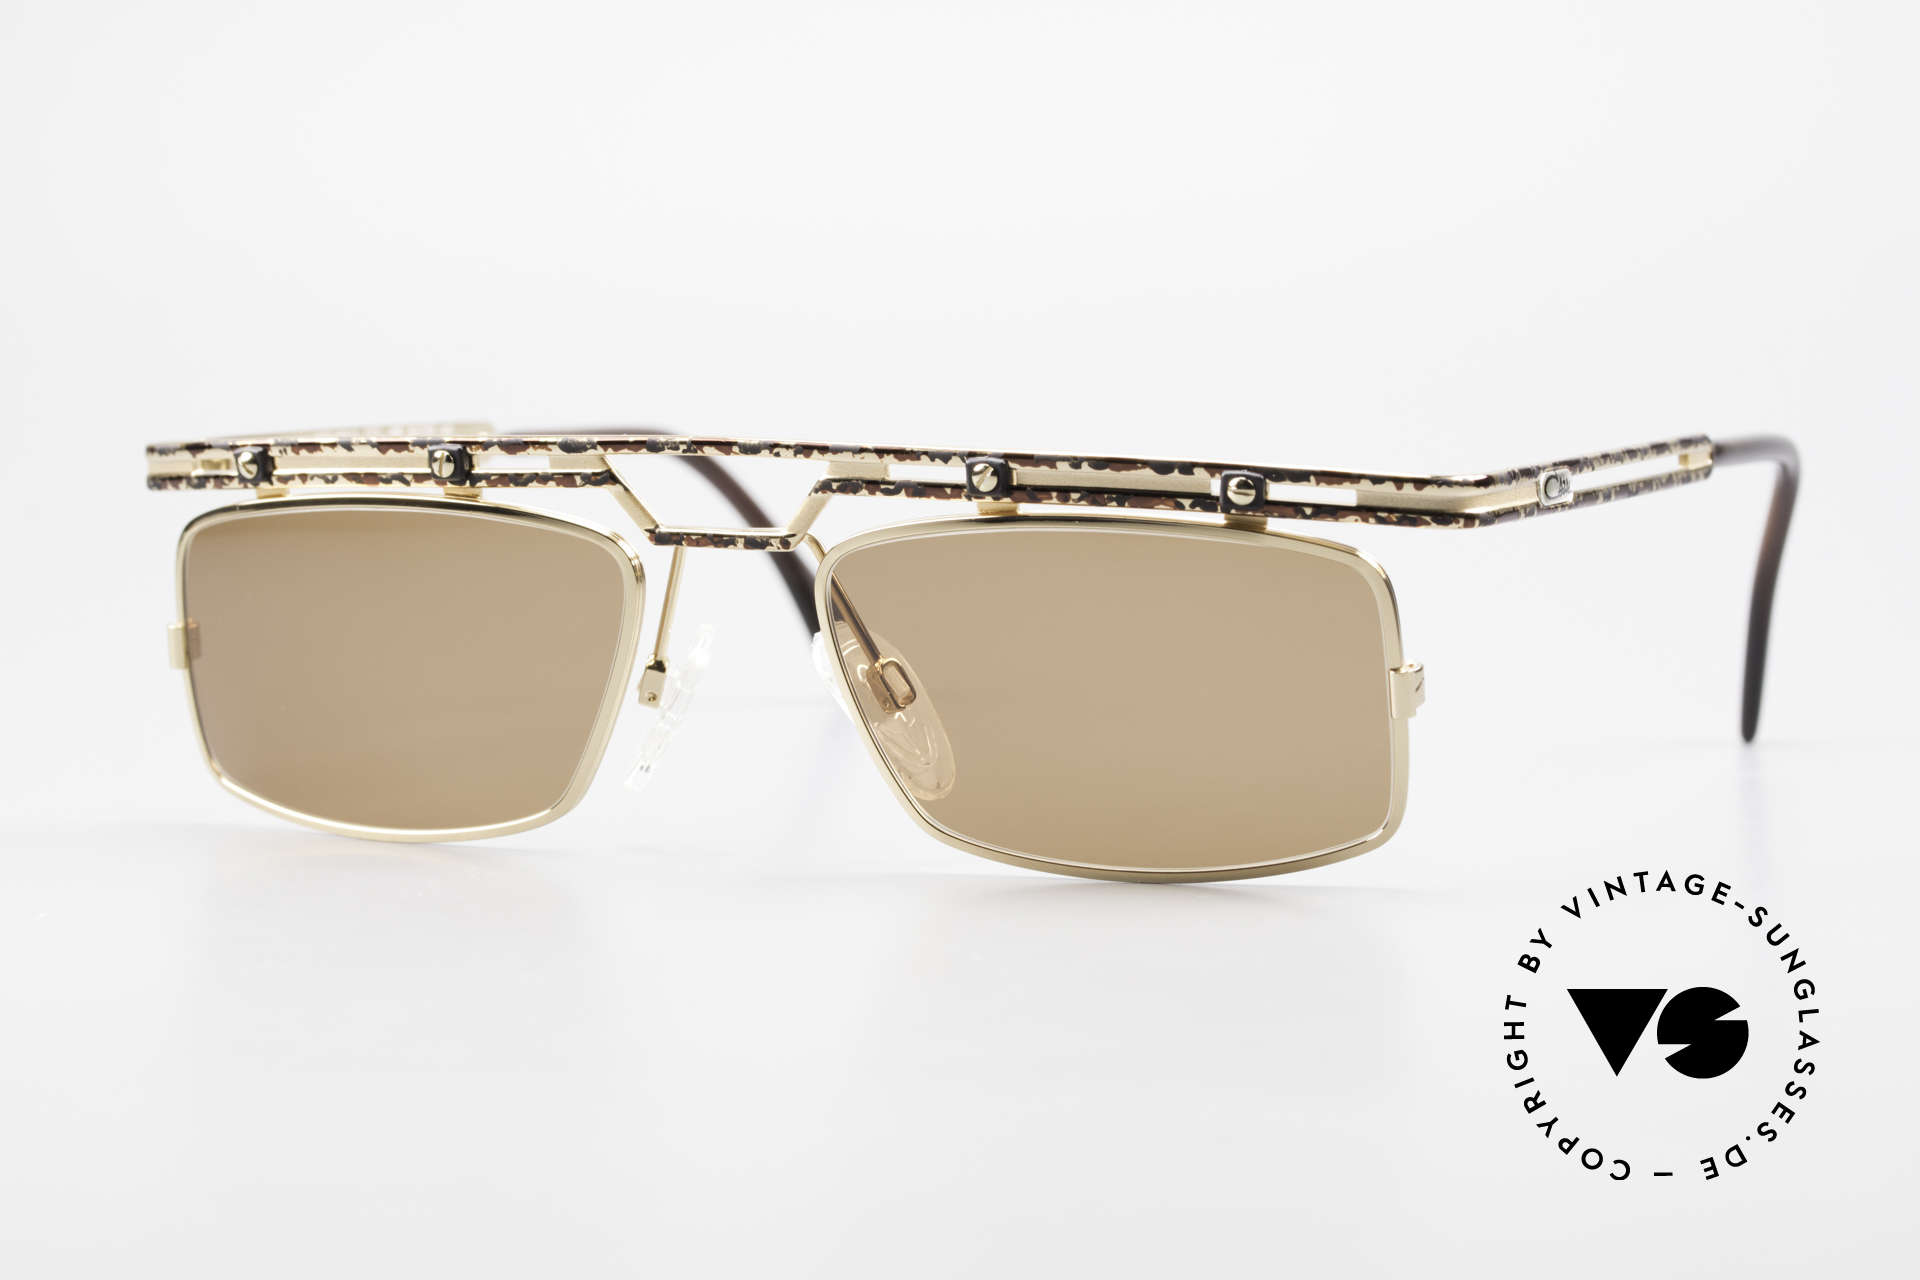 Cazal 975 Square Designer Sunglasses 90s, striking / square Cazal vintage shades from 1996/97, Made for Men